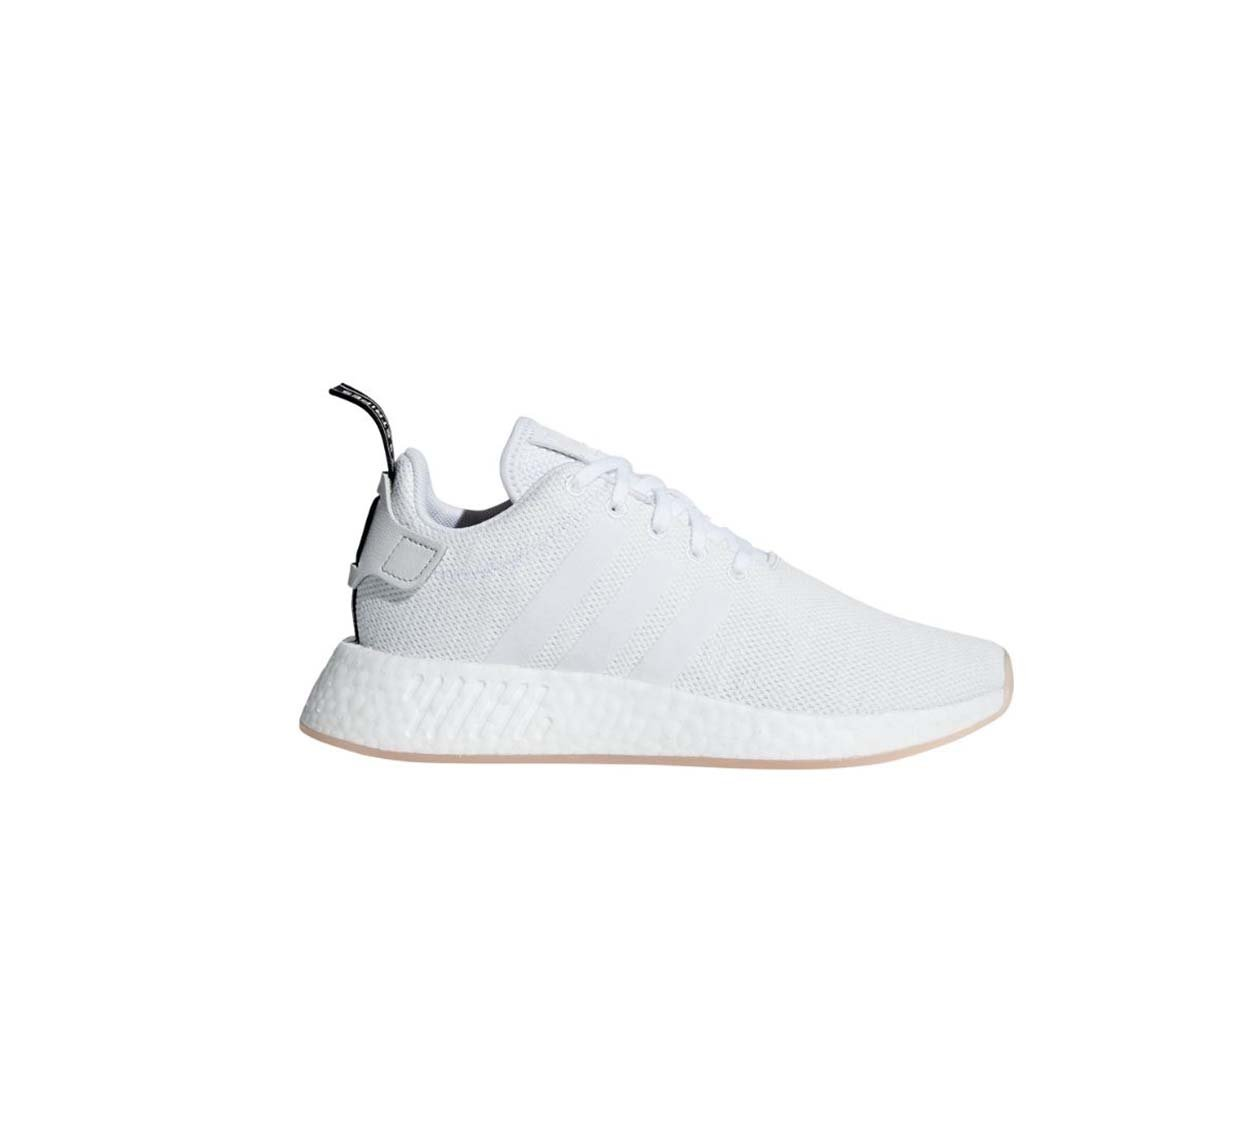 adidas Originals Women's NMD_r2 W Sneaker B078T35WX6 9 M US|Crystal White / Footwear White-core Black